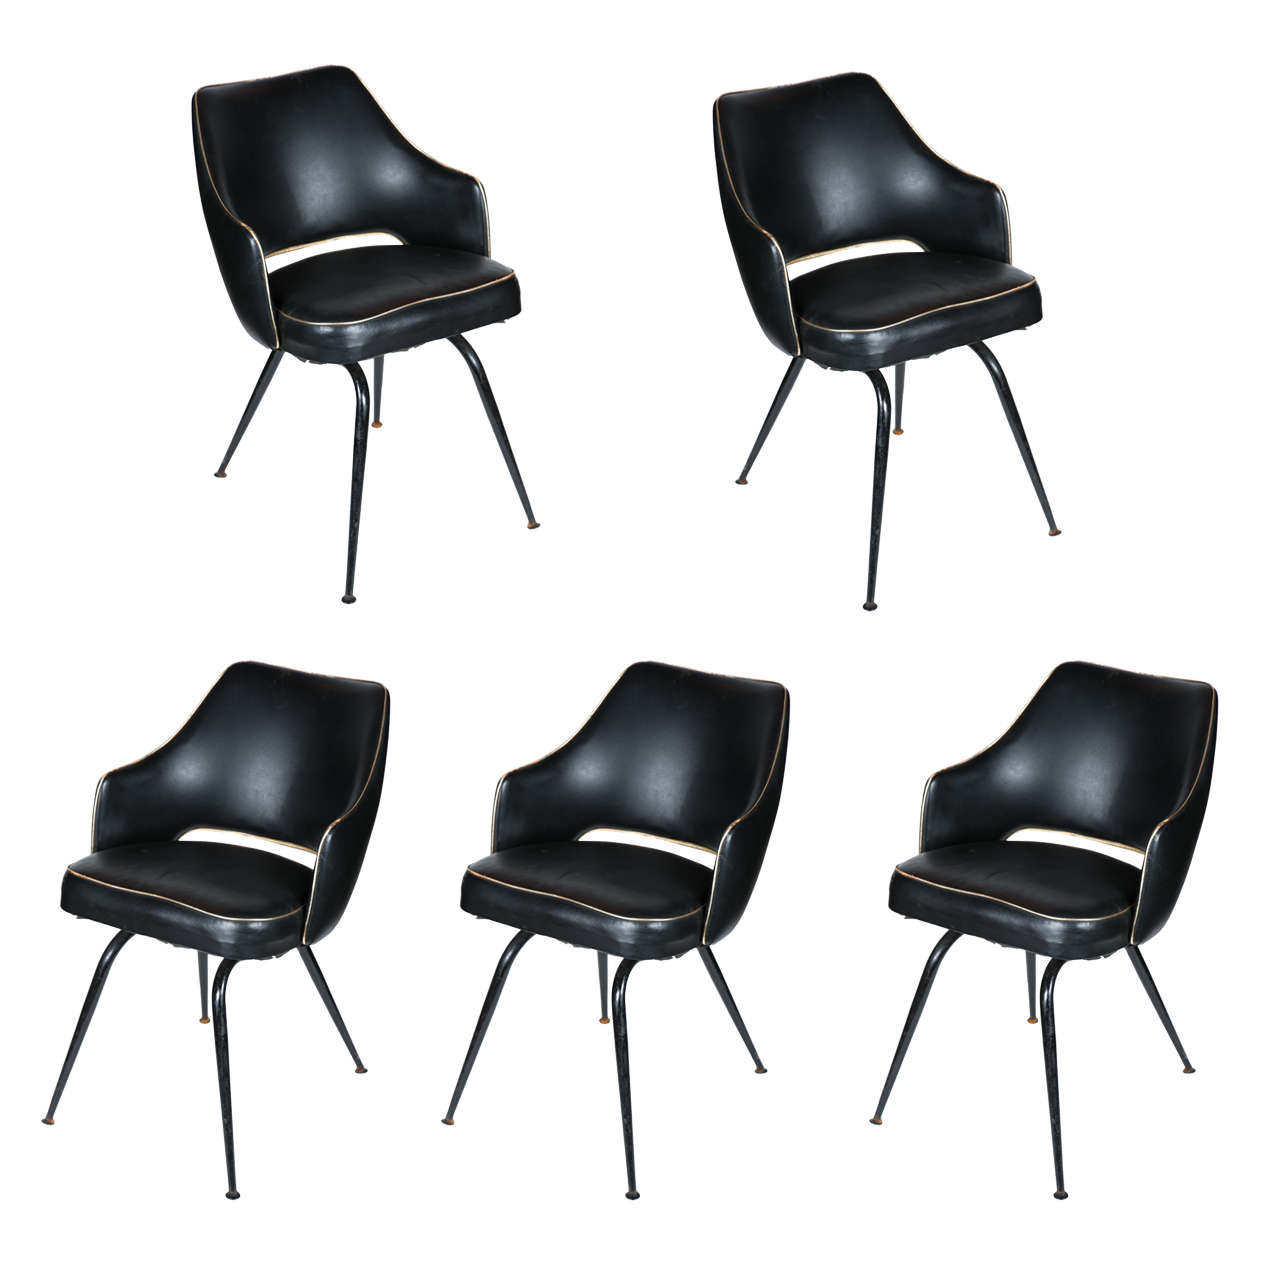 Mid Century Modern Office Chairs At 1stdibs